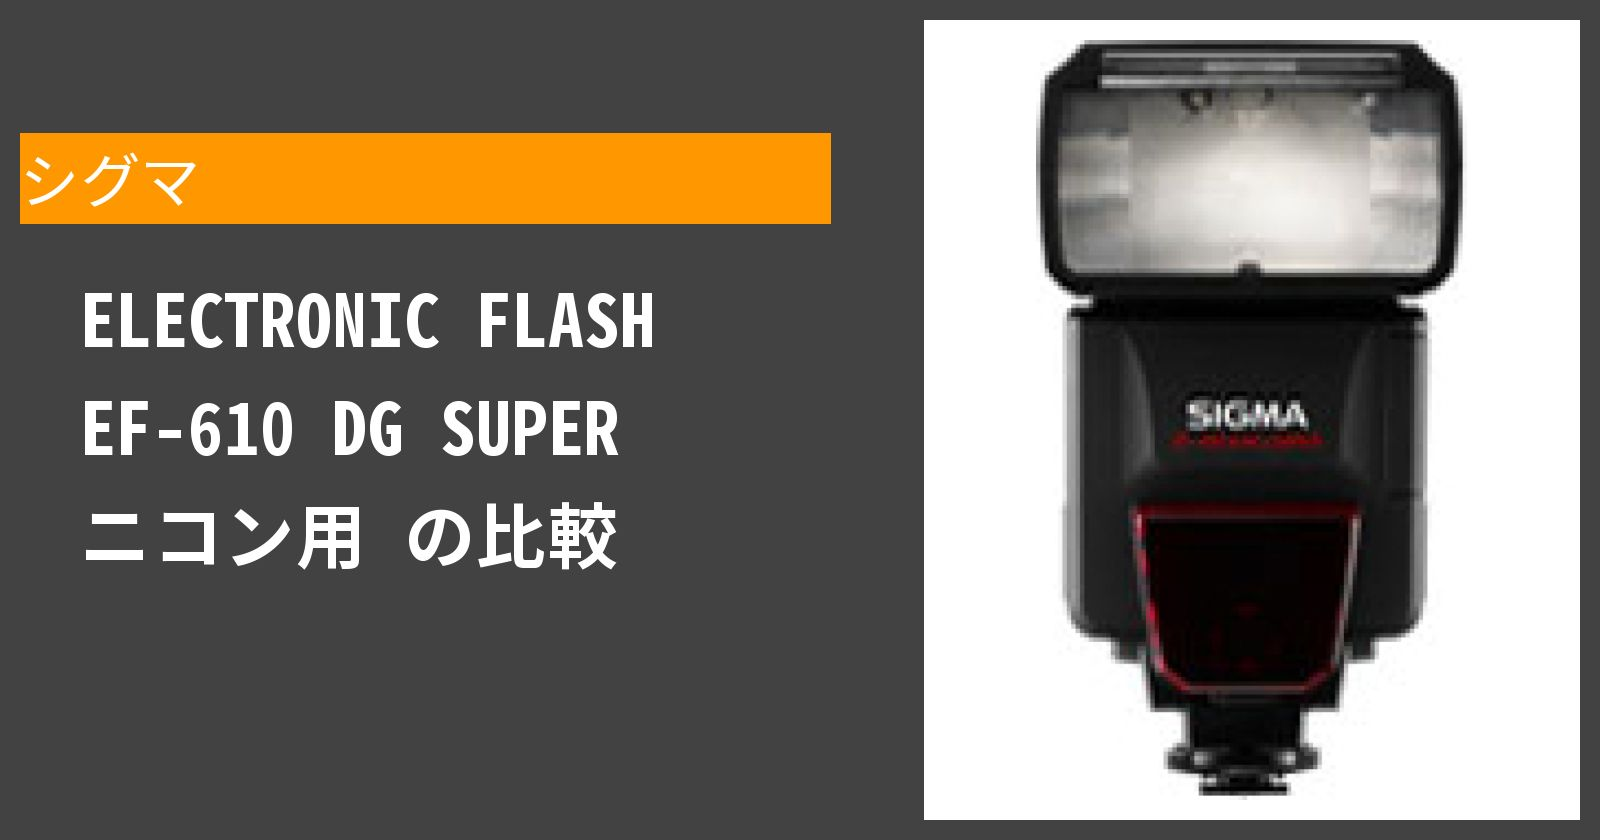 ELECTRONIC FLASH EF-610 DG SUPER ニコン用を徹底評価